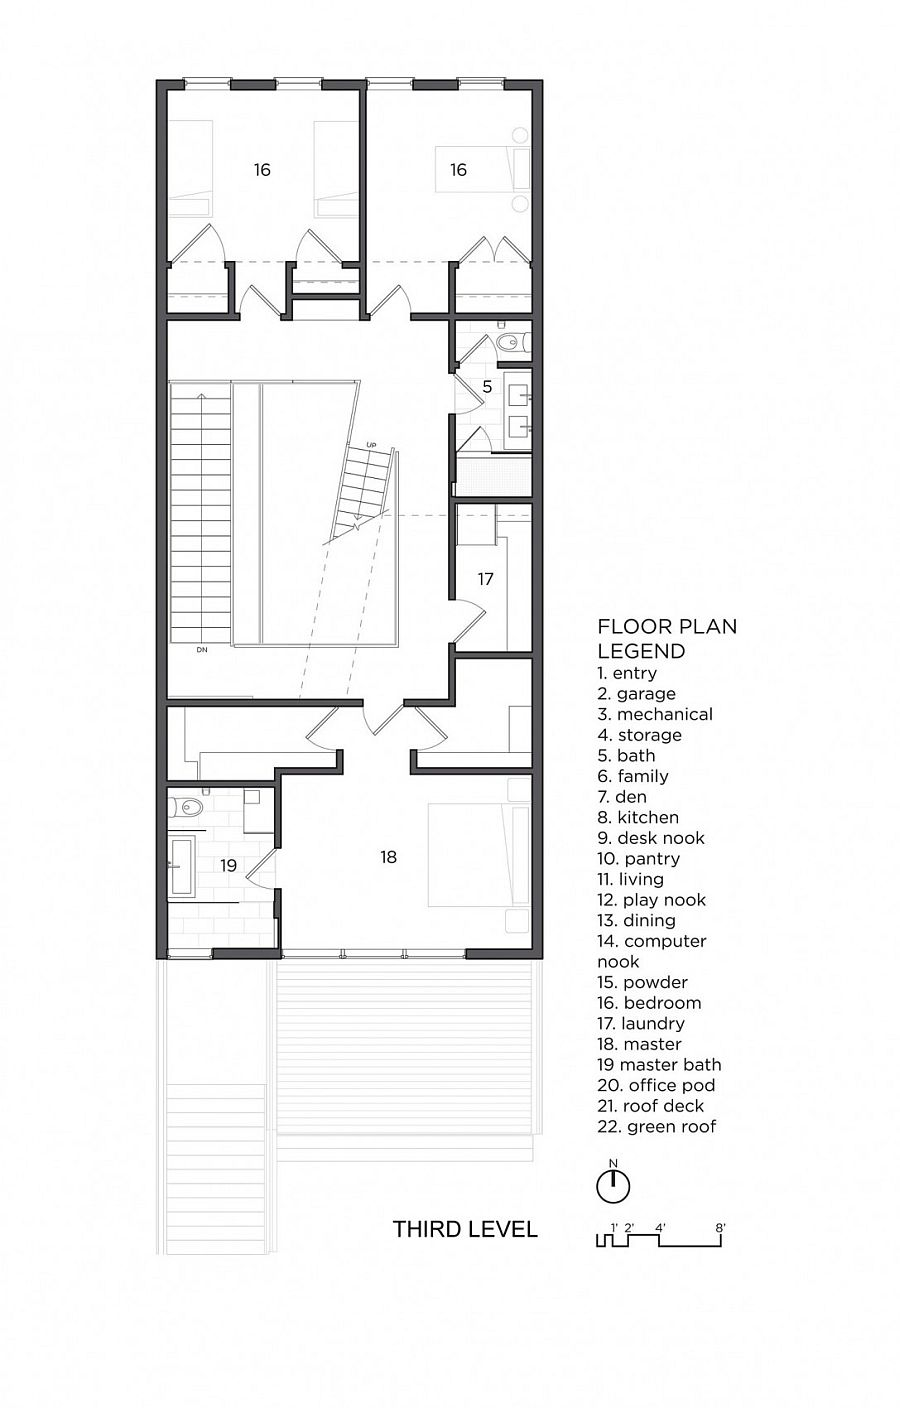 Floor plan of the master bedroom level